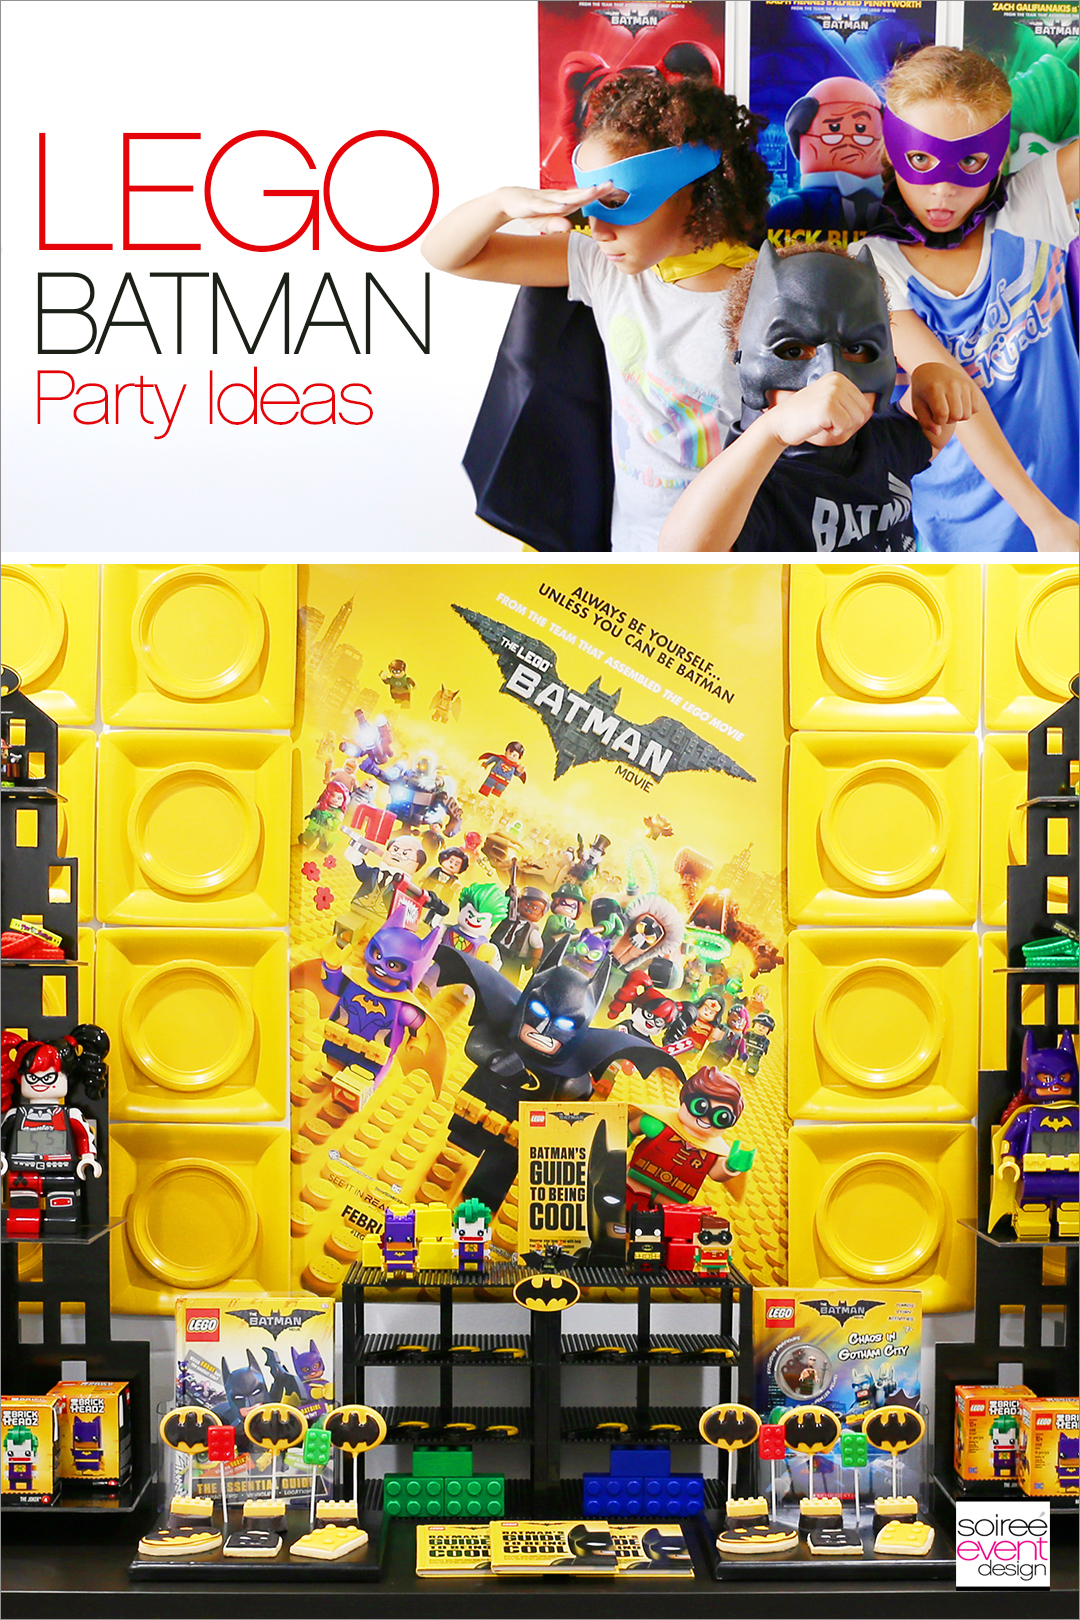 Lego Batman Party Ideas - Soiree Event Design